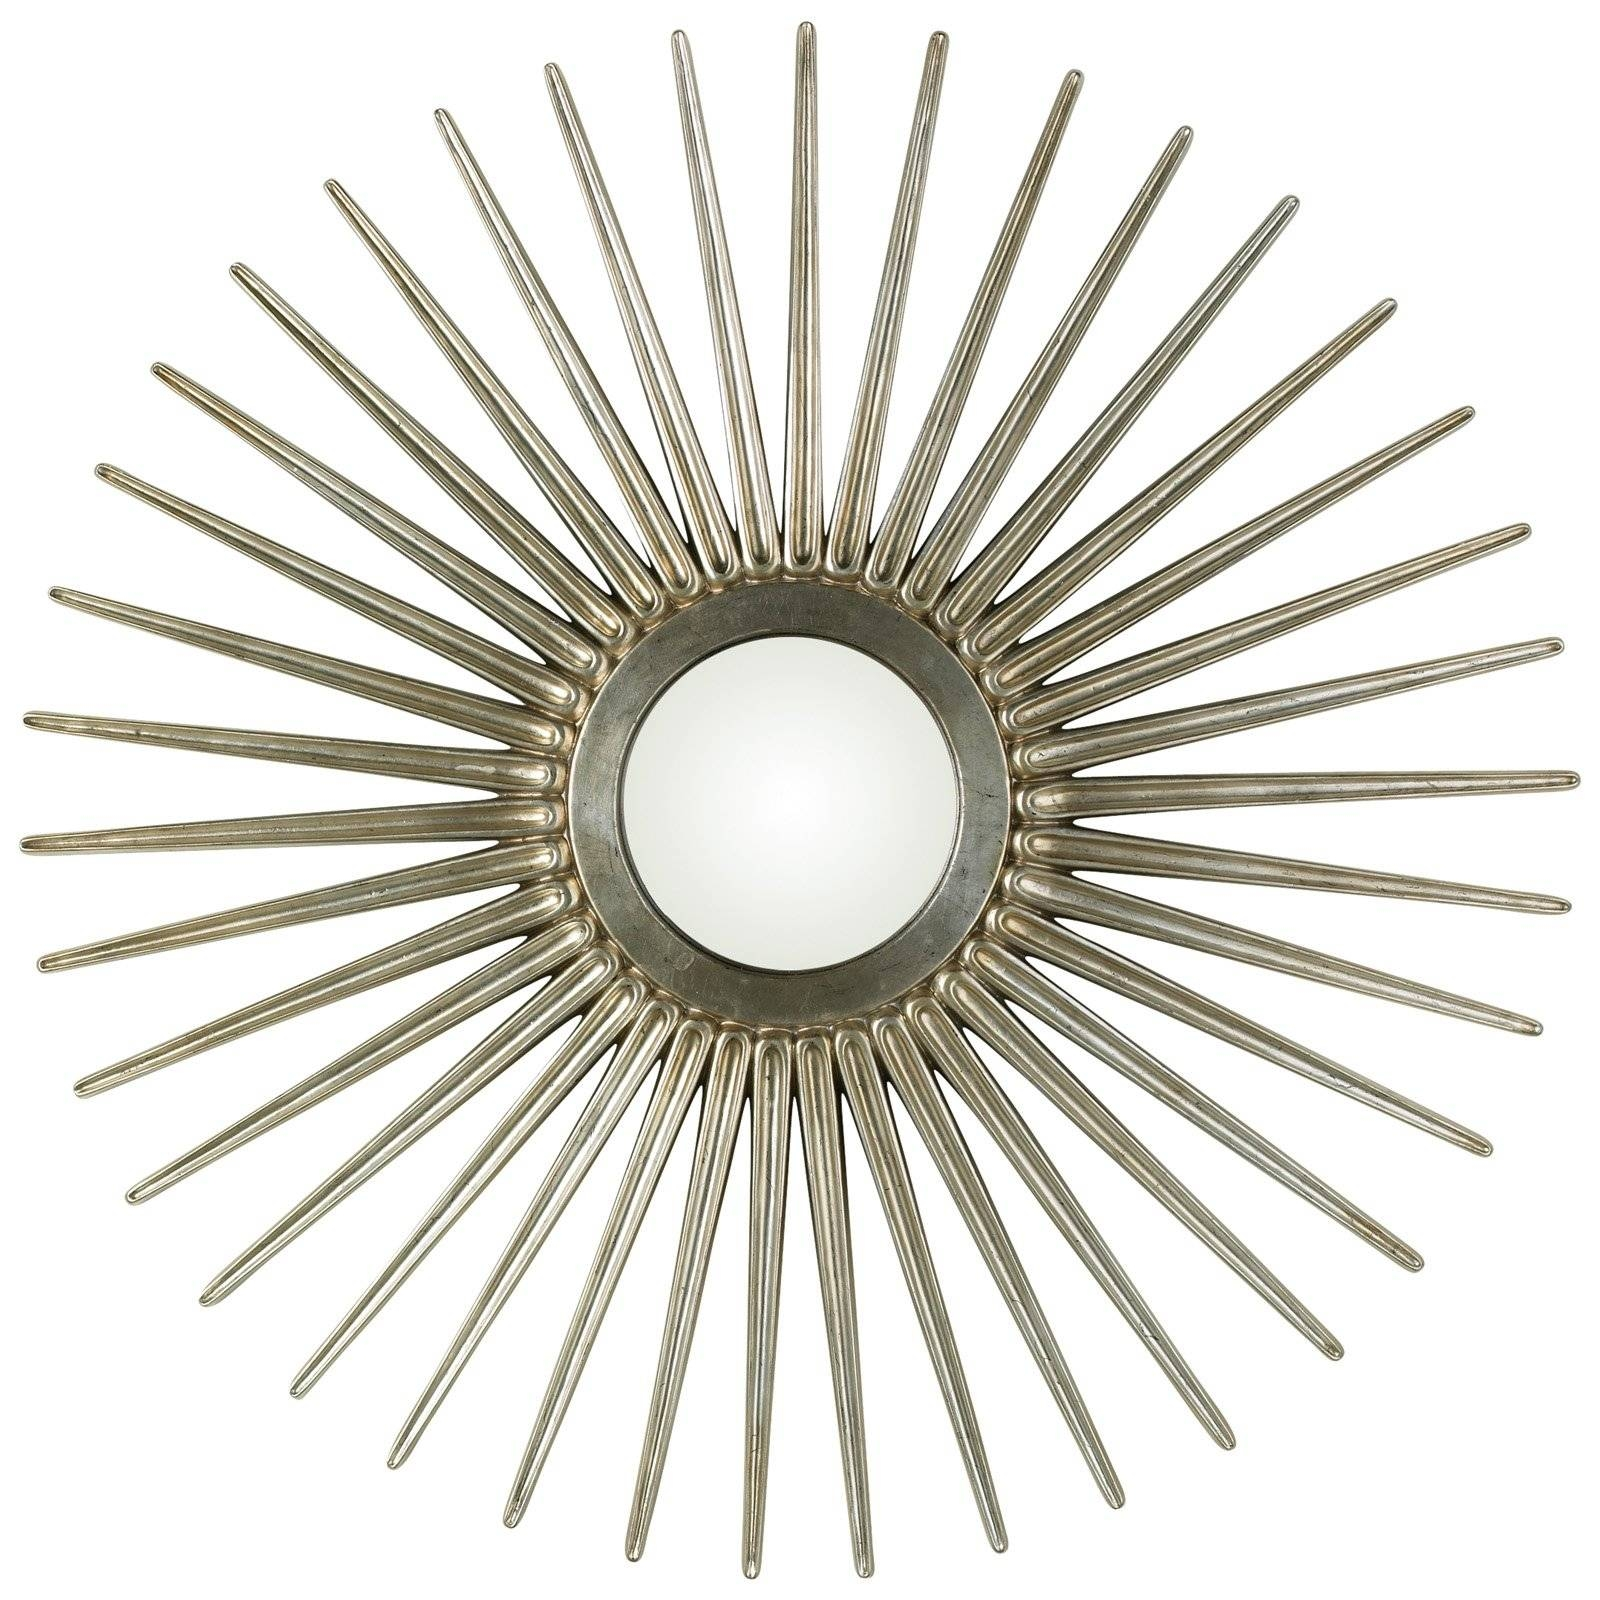 Array Of Light: Sunburst Mirrors - Room Refresh | Hayneedle regarding Sun Mirrors (Image 1 of 25)